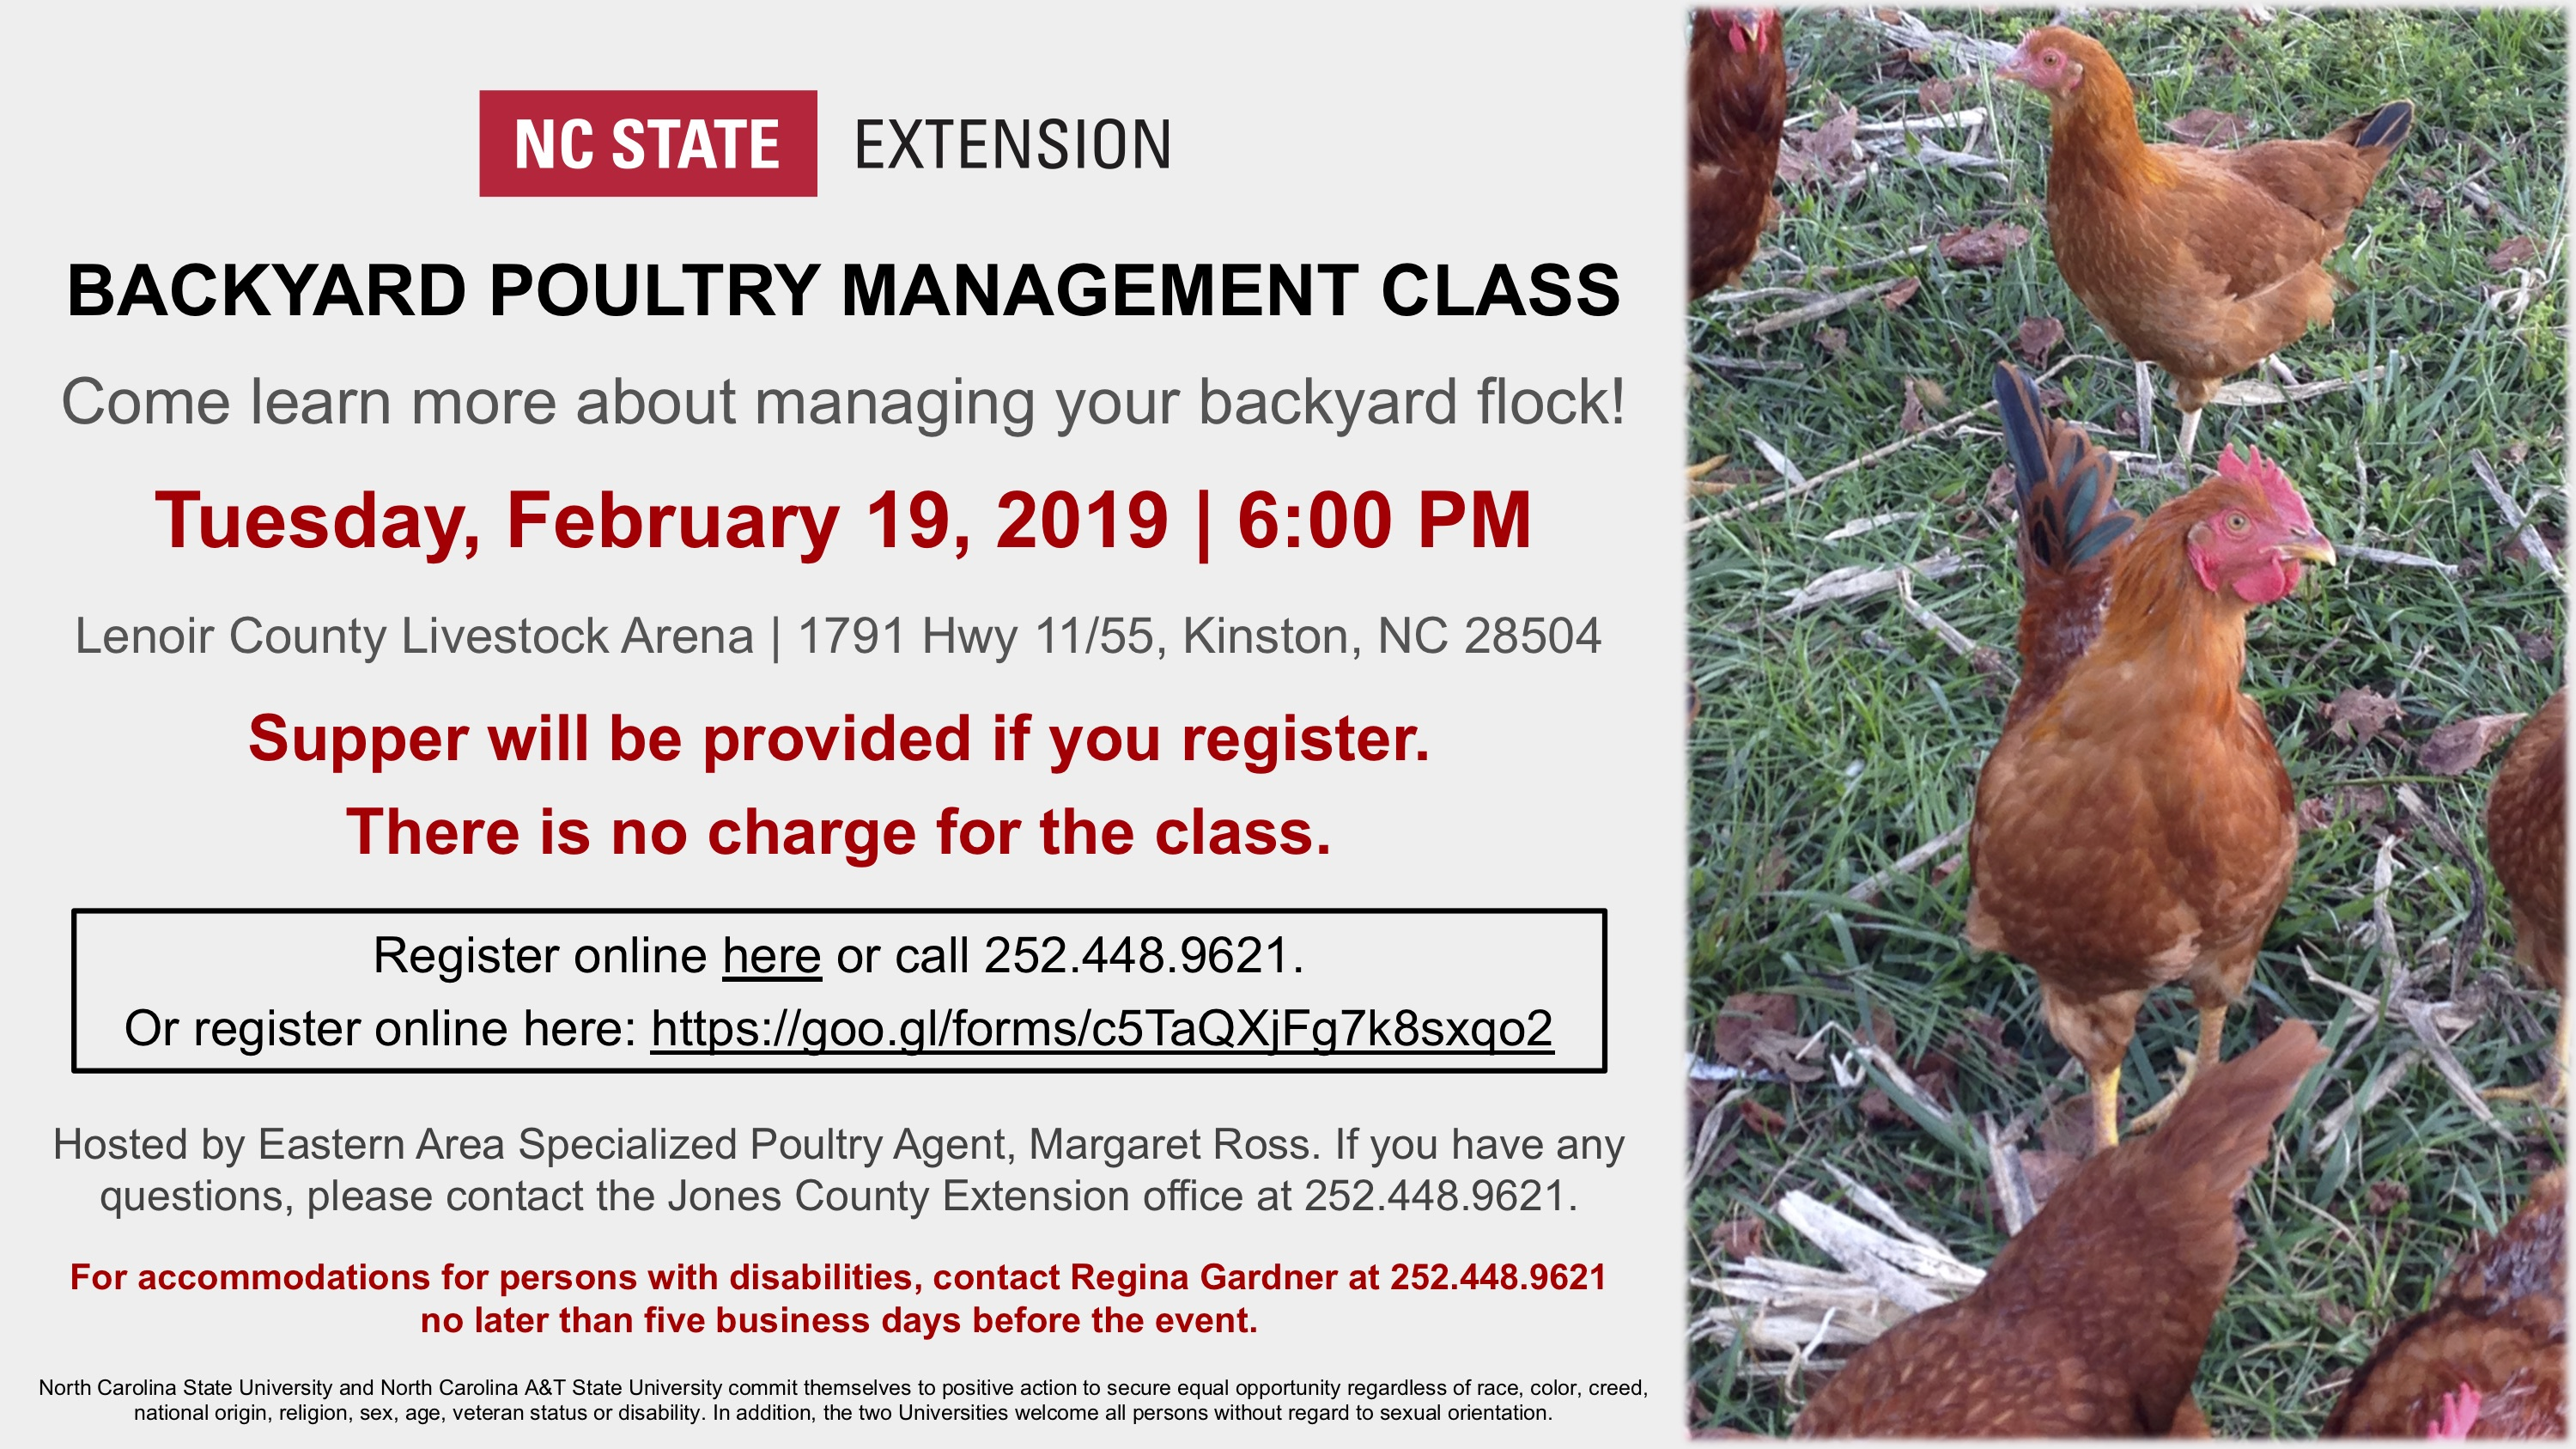 Backyard Poultry Management Class flyer image